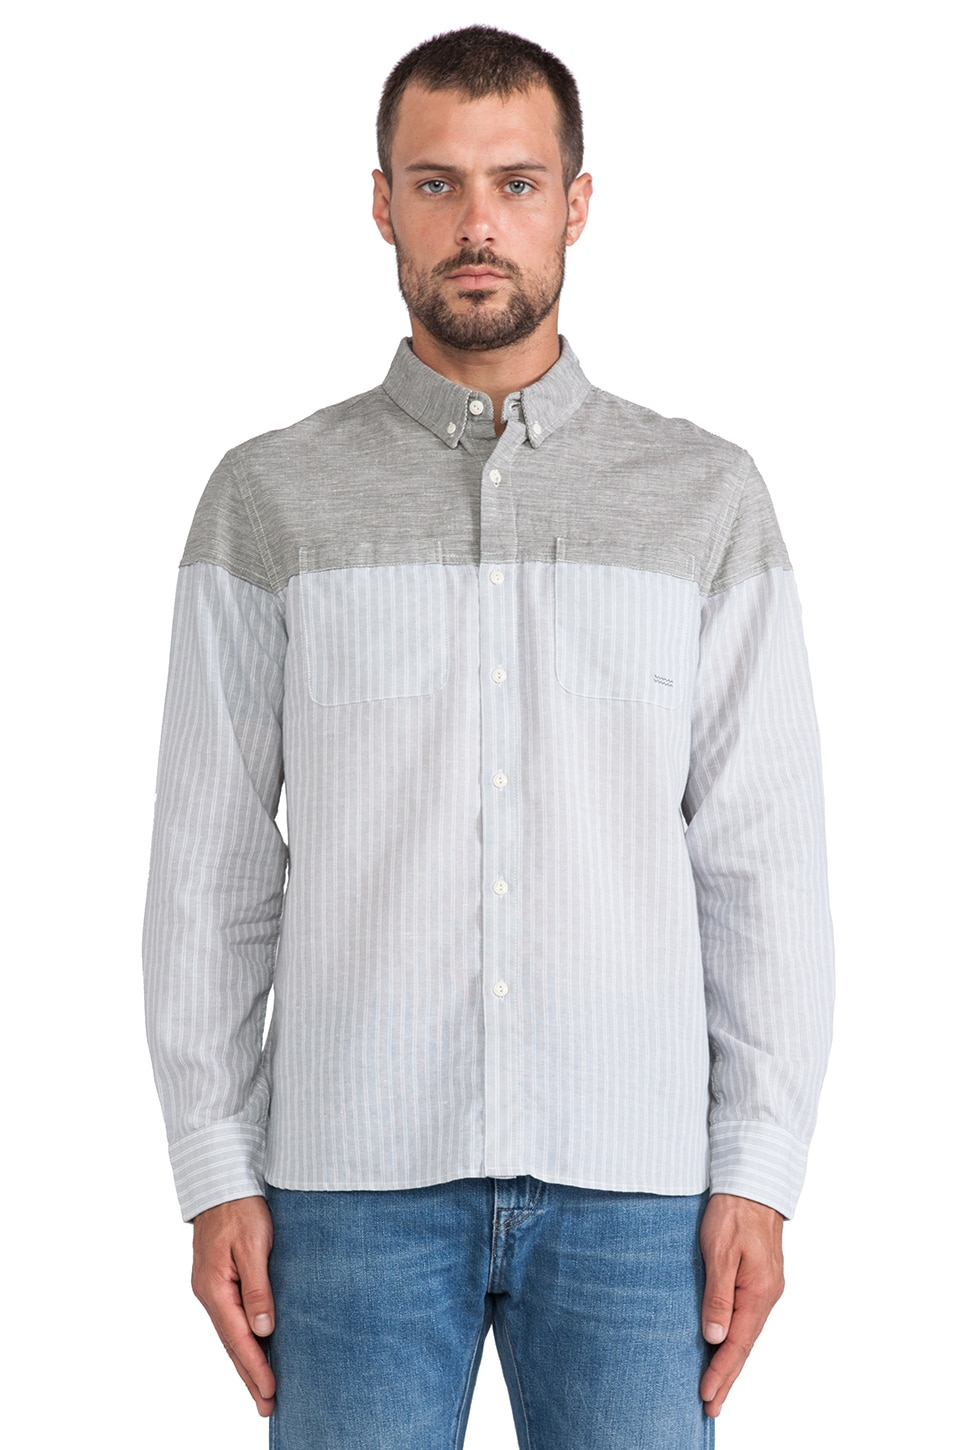 OURS Tosh Shirt in Sea Green